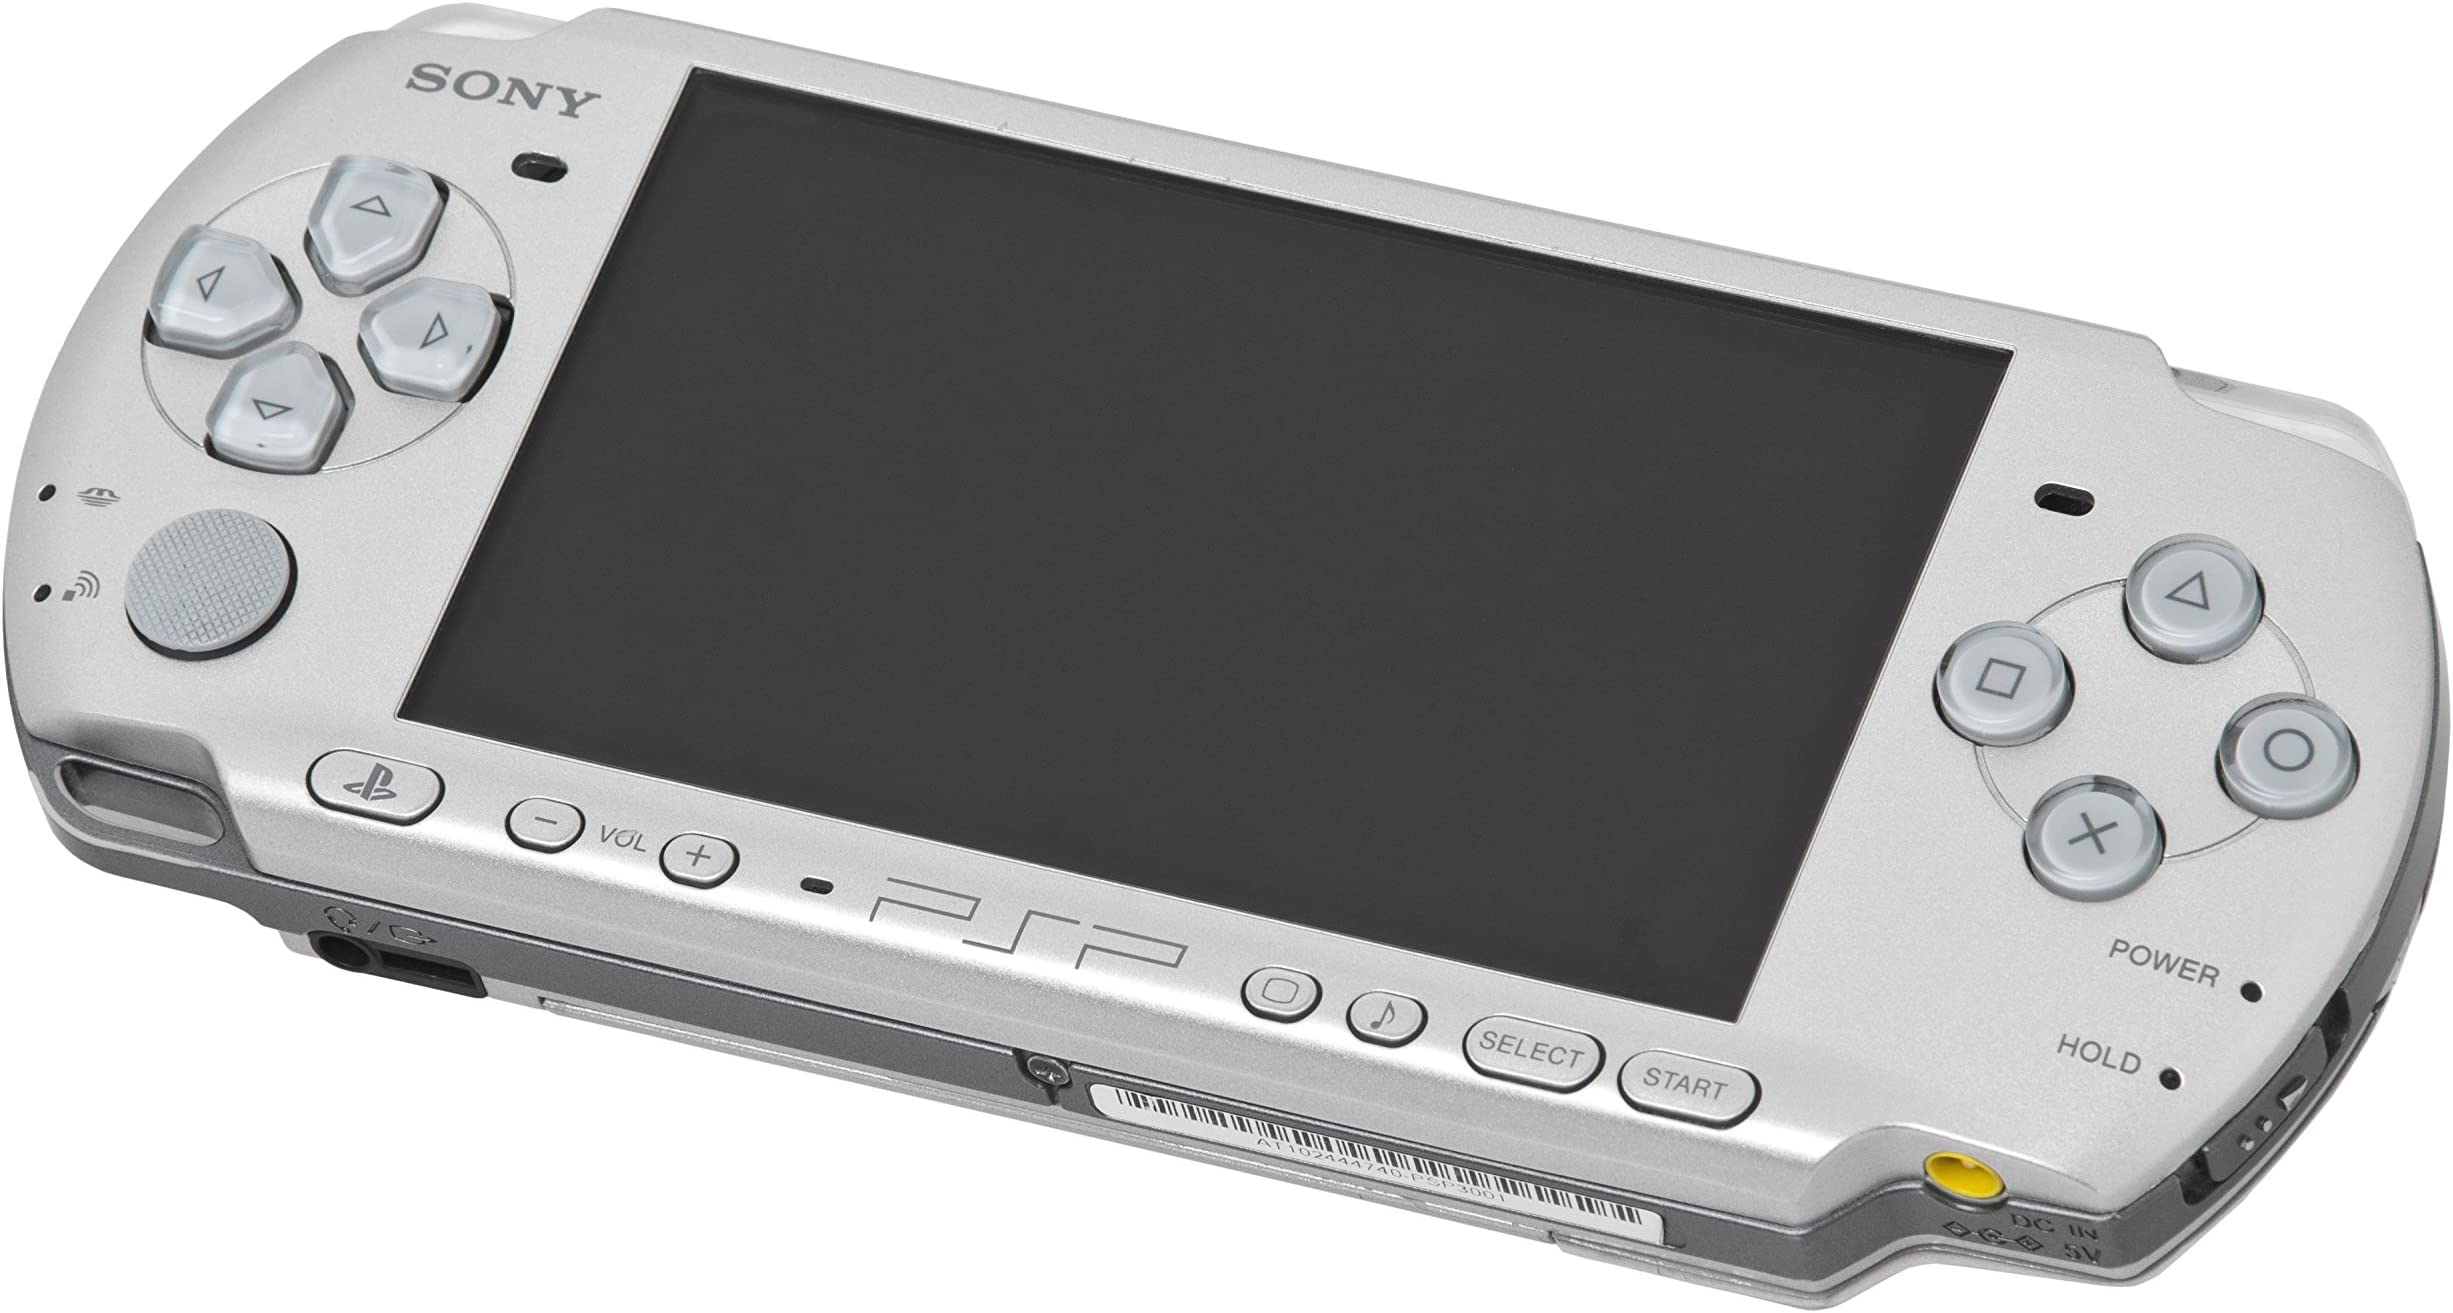 Amazon.com: PlayStation Portable 3000 System - Mystic Silver ...